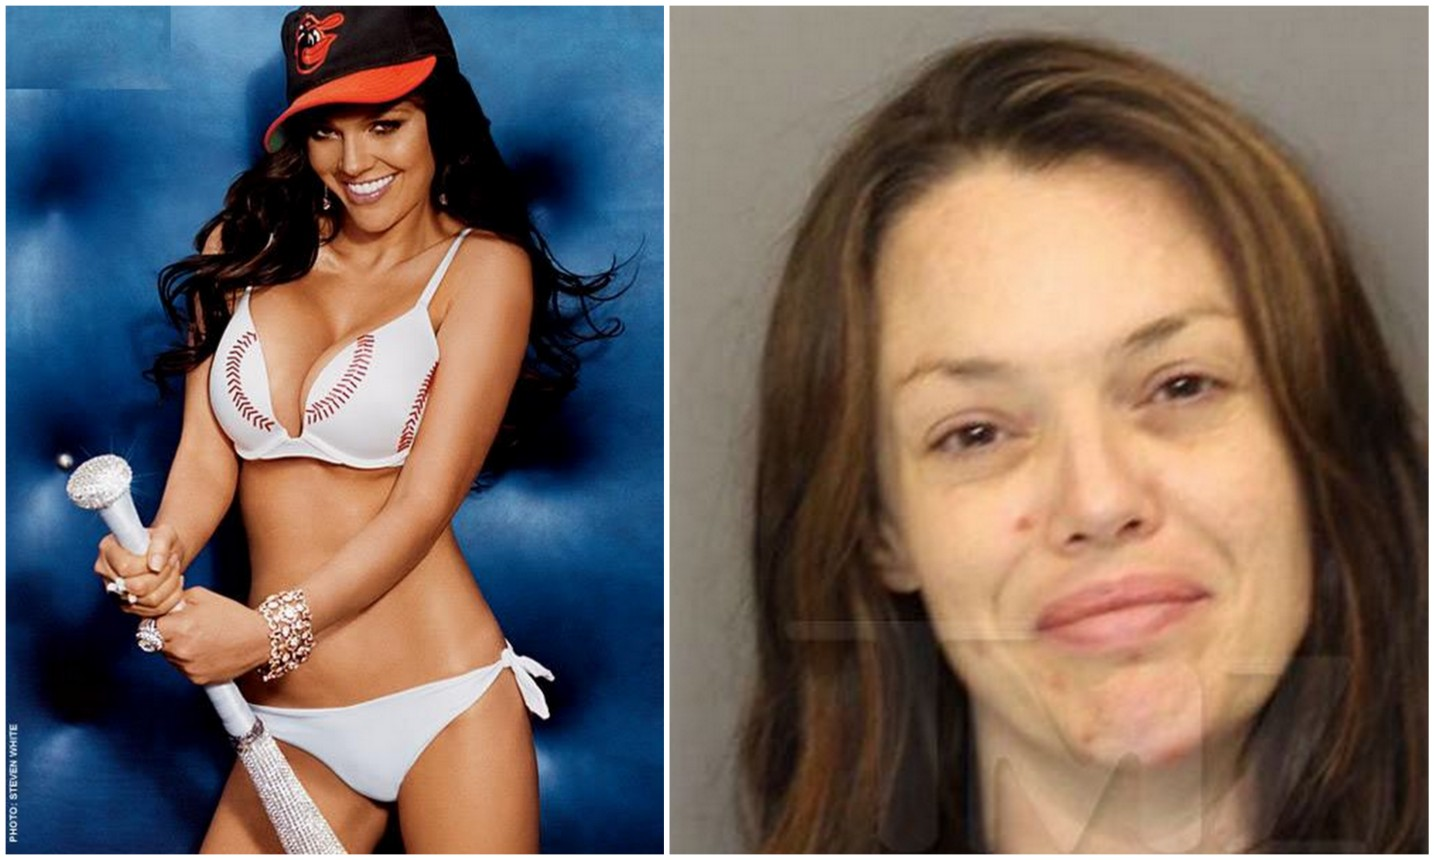 Ex-Baseball Wife Anna Benson Arrested for Threatening Ex With Gun